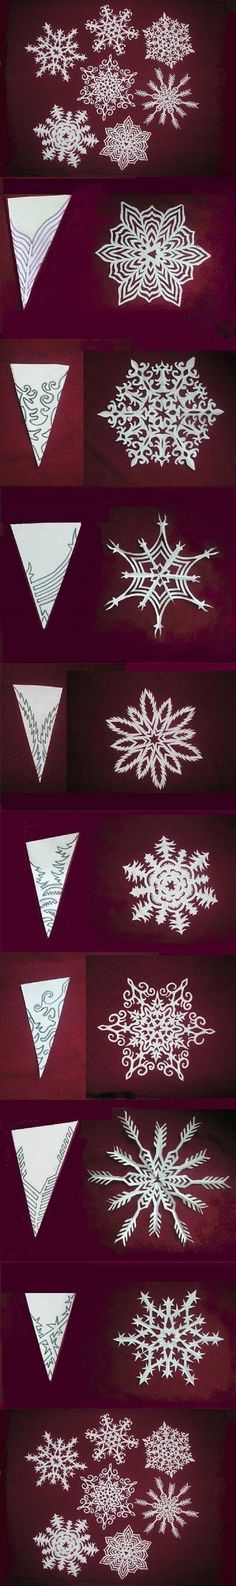 (---)Wonderful DIY Paper Snowflakes With Pattern - 16 Winter Wonderland DIY Paper Decorations